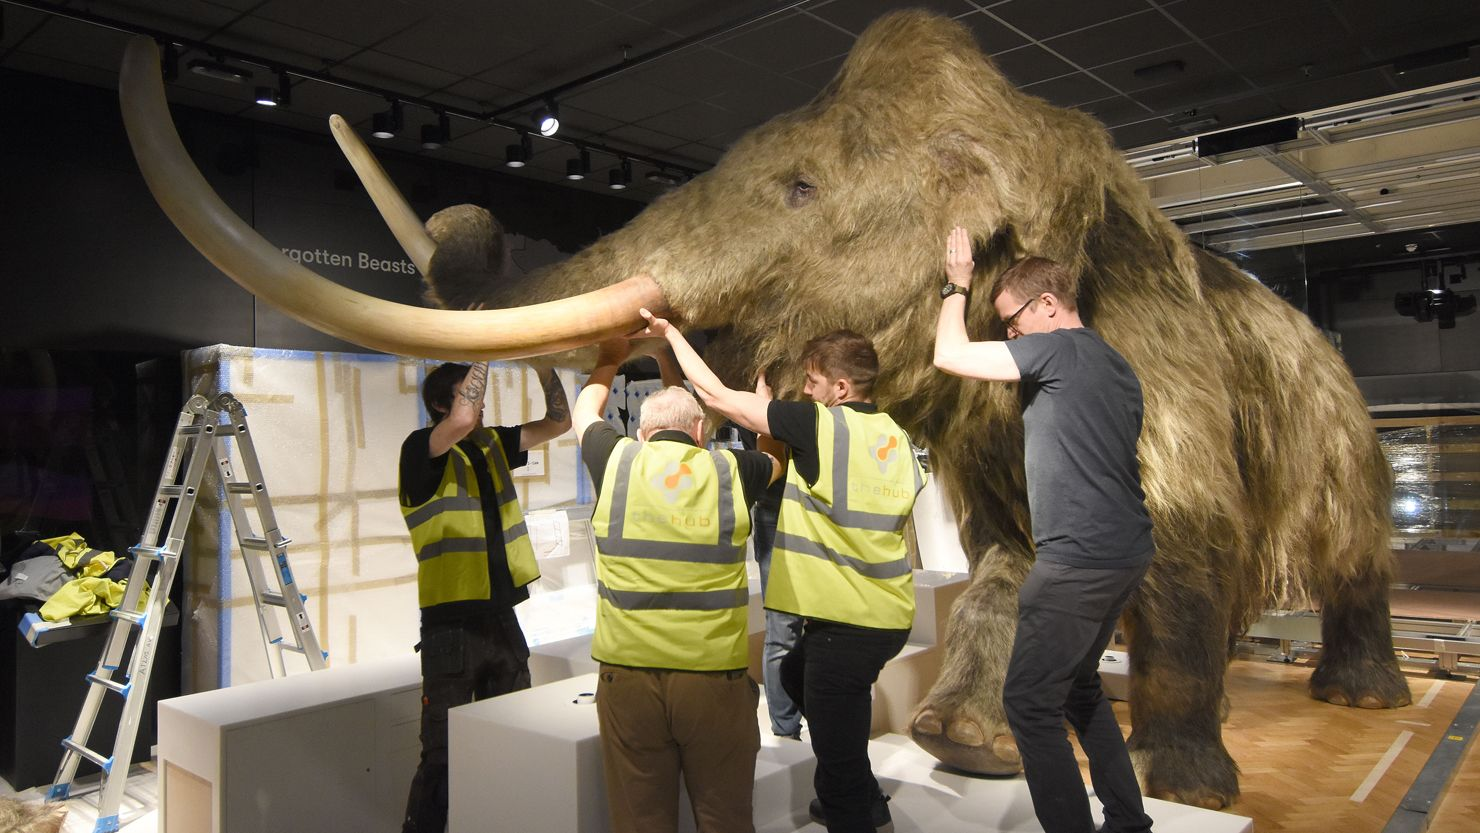 A replica woolly mammoth being moved into place by a team of people in a gallery